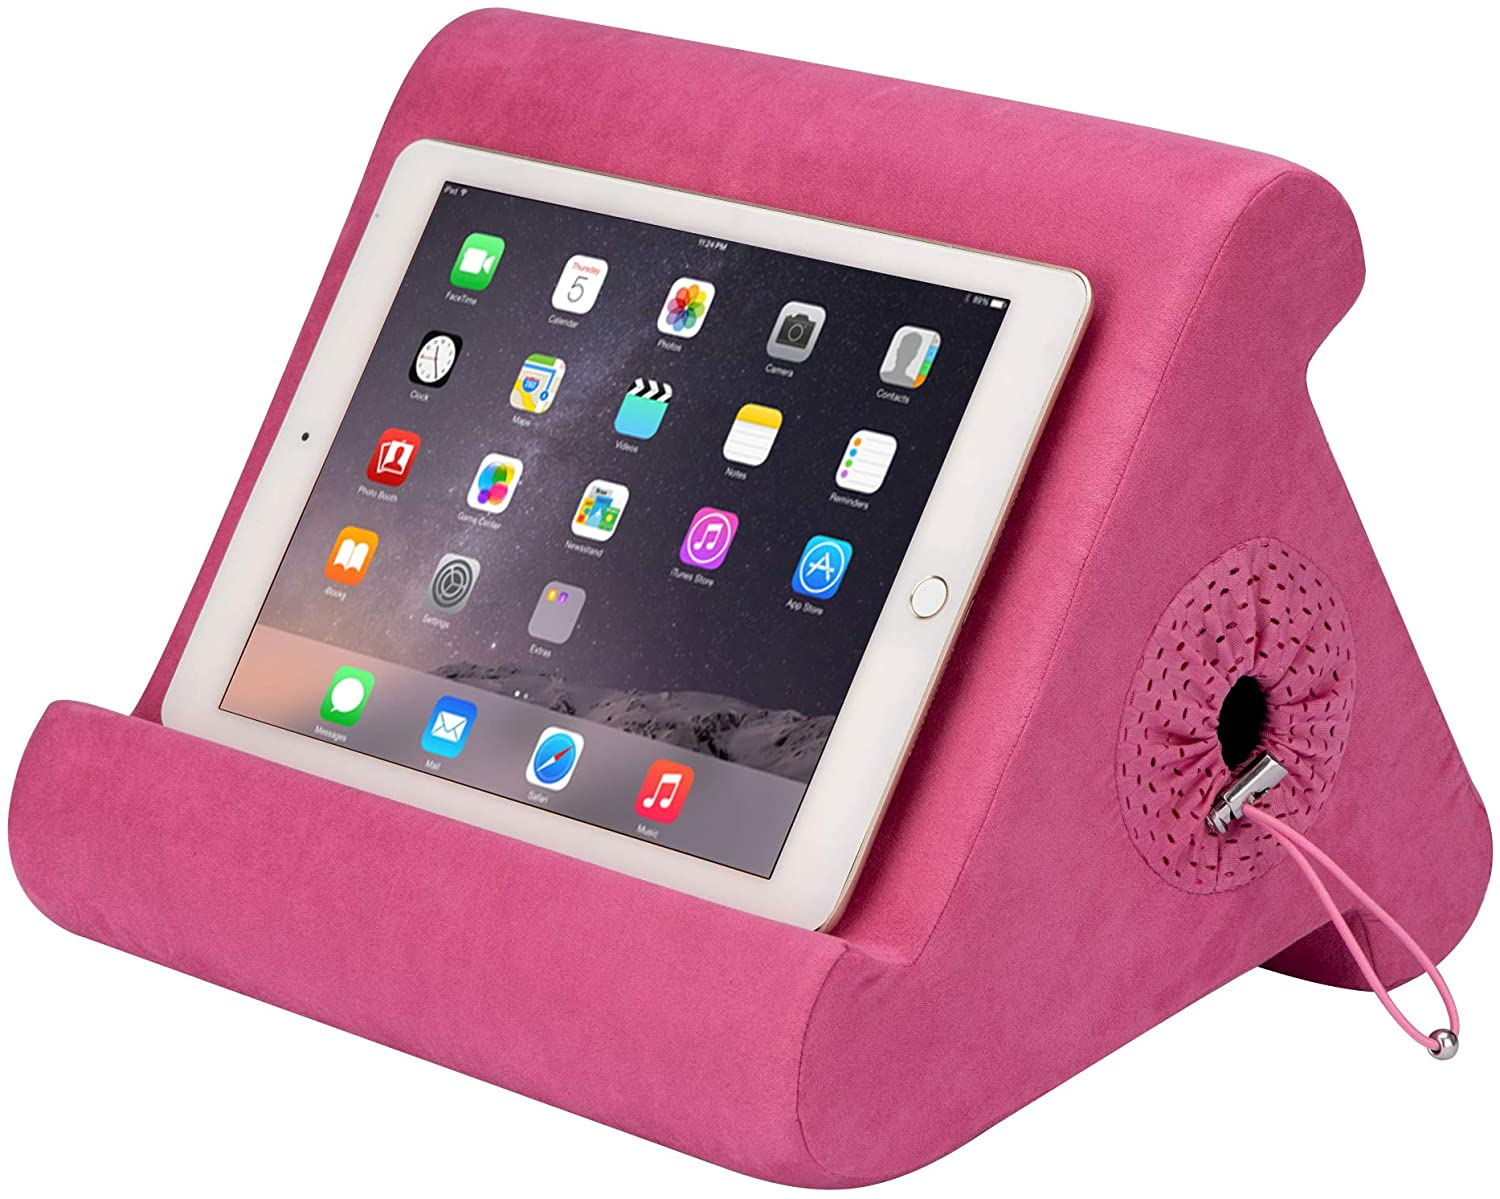 Flippy with New Storage Cubby Multi-Angle Soft Pillow Lap Stand for iPads, Tablets, eReaders, Smartphones, Books, Magazines (in The Pink Baby)